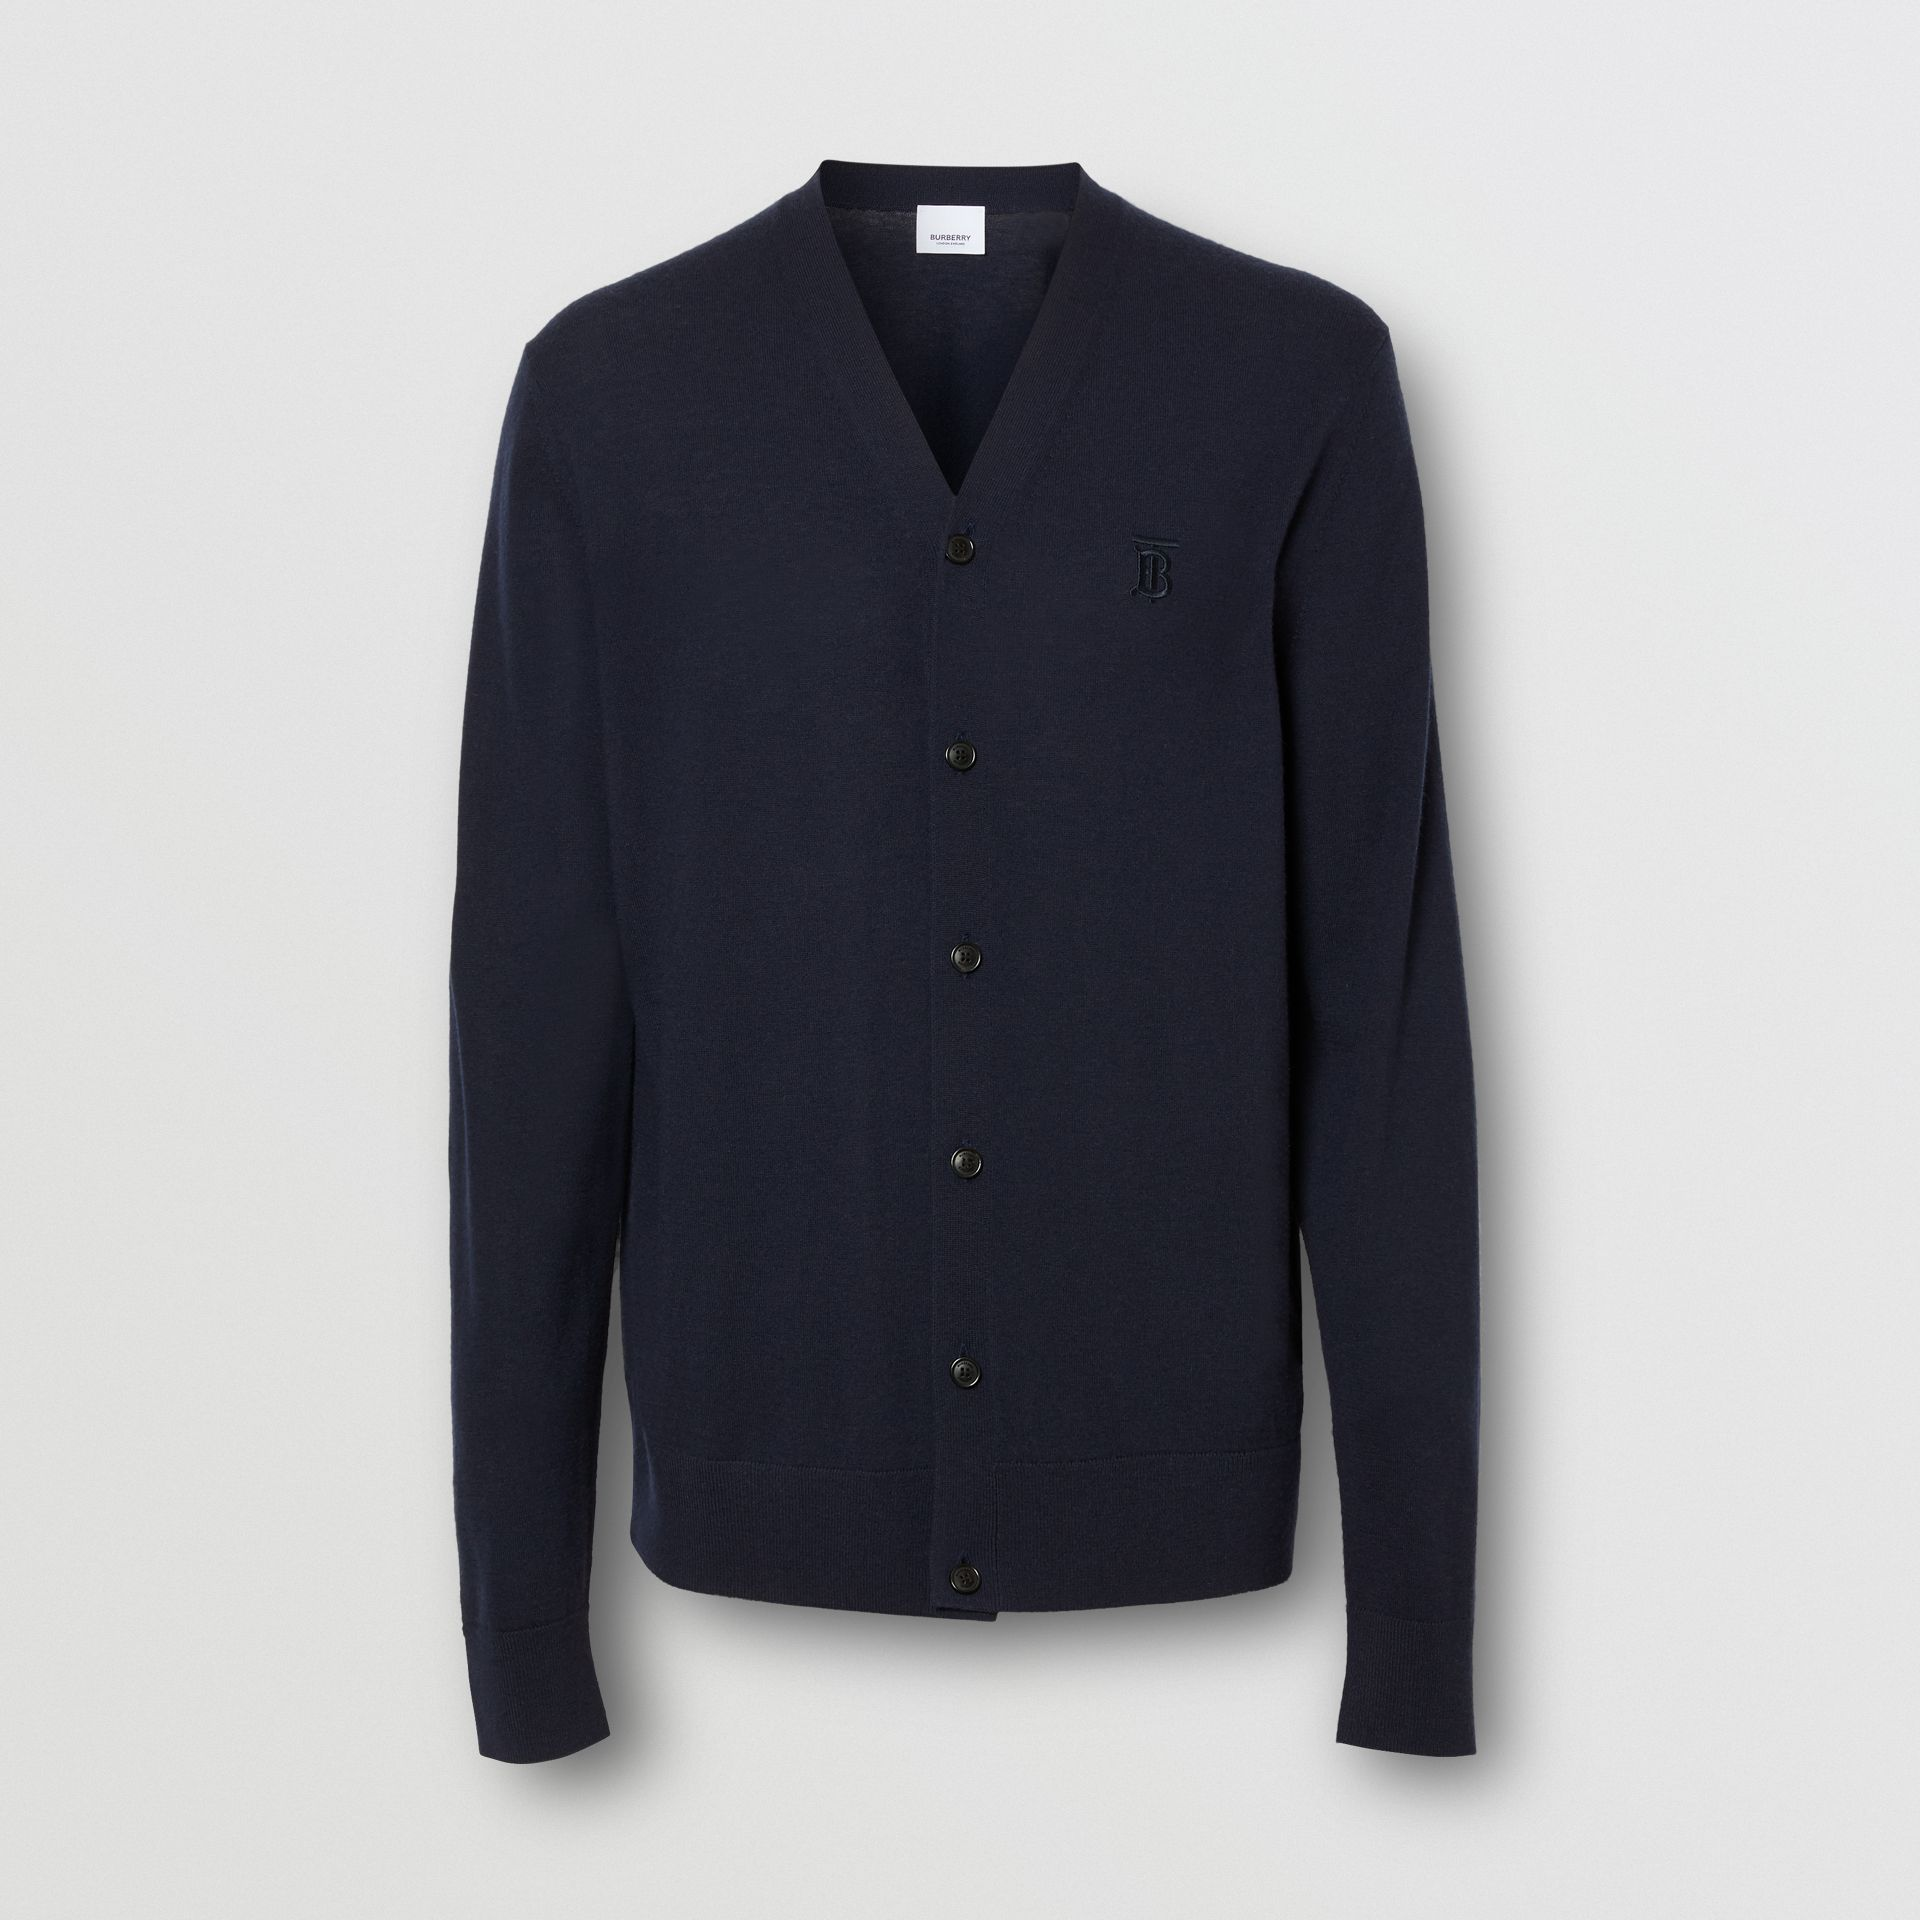 Monogram Motif Cashmere Cardigan in Navy - Men | Burberry Singapore - gallery image 3